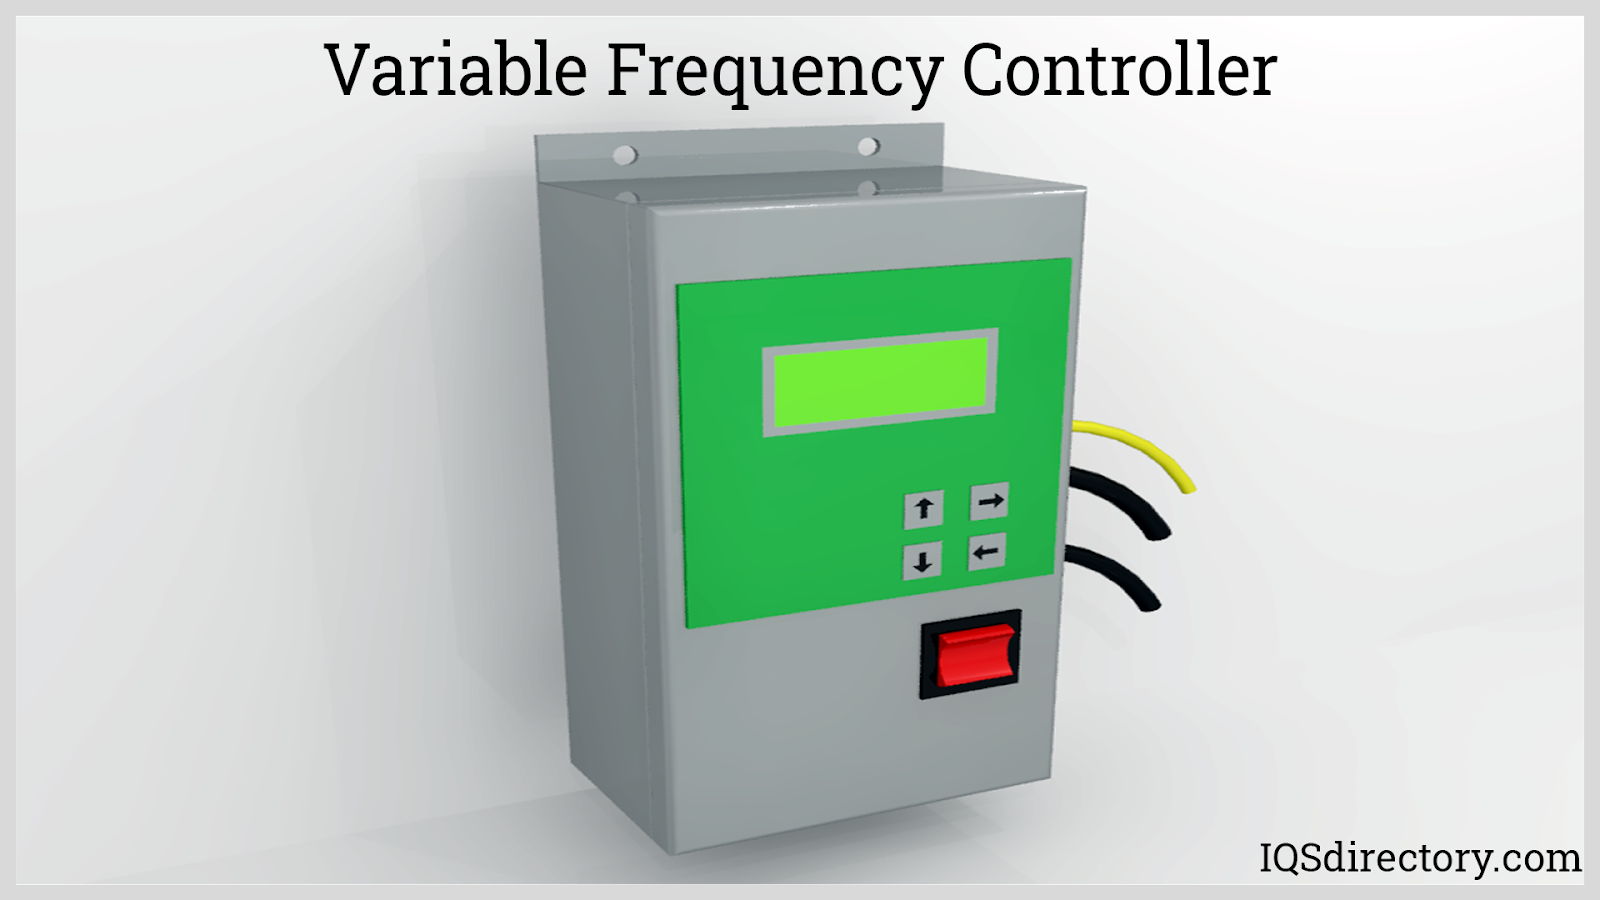 Variable Frequency Controller